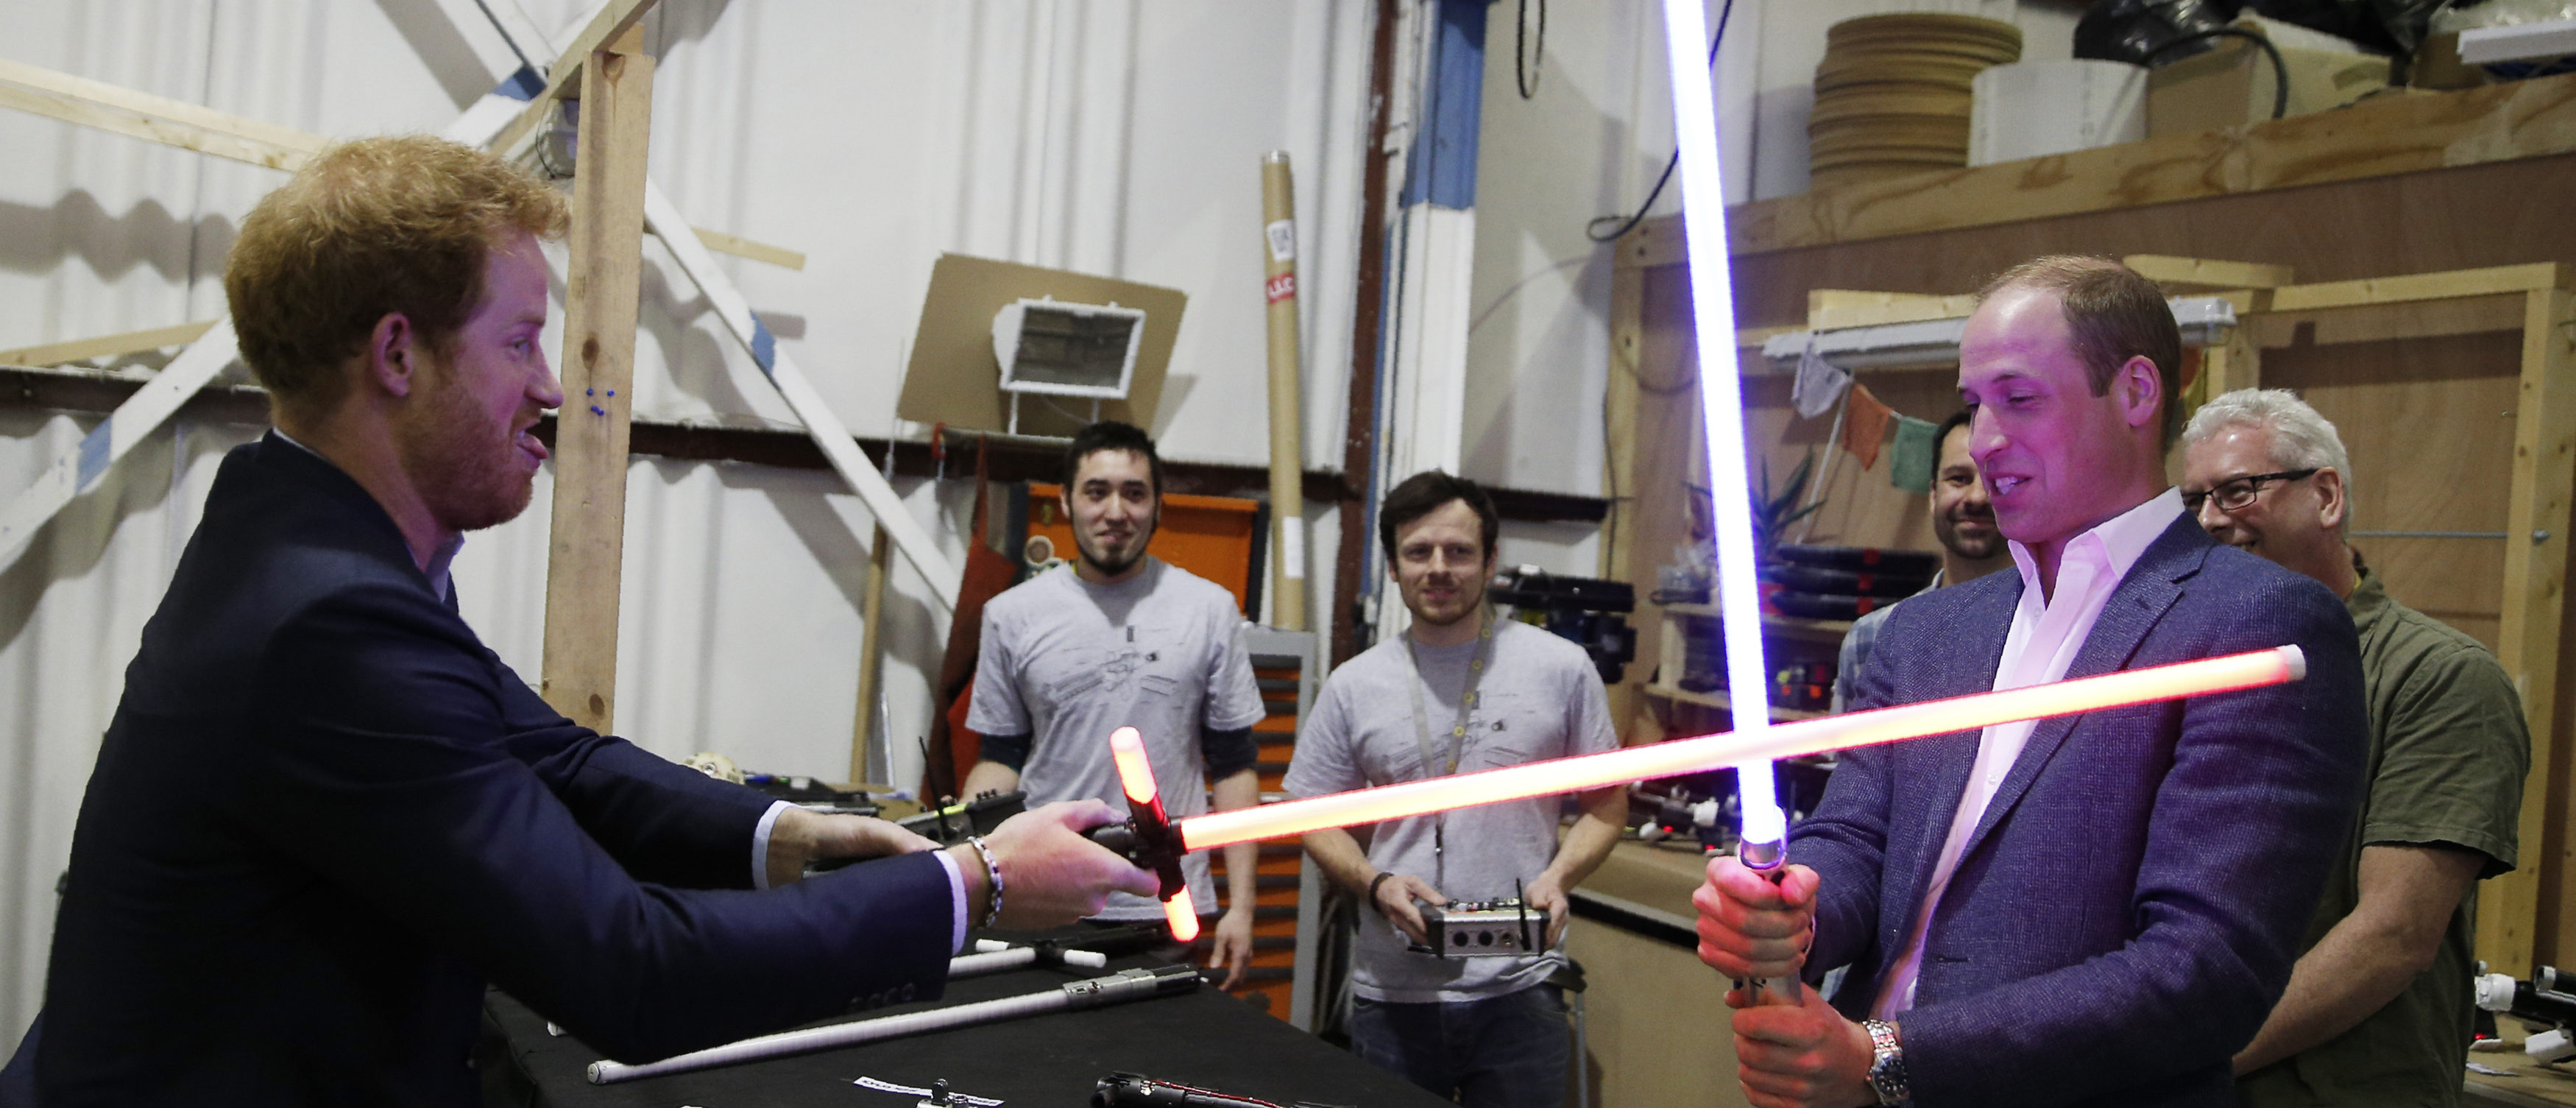 Britain's Prince William (R) tries a light sabre against his brother Prince Harry during a visit to the Star Wars film set at Pinewood Studios near Iver Heath, west of London, Britain, April 19, 2016. Prince William and Prince Harry are touring Pinewood to visit the production workshops and meet the creative teams working behind the scenes on the Star Wars films. REUTERS/Adrian Dennis/Pool - LR1EC4J135LJF